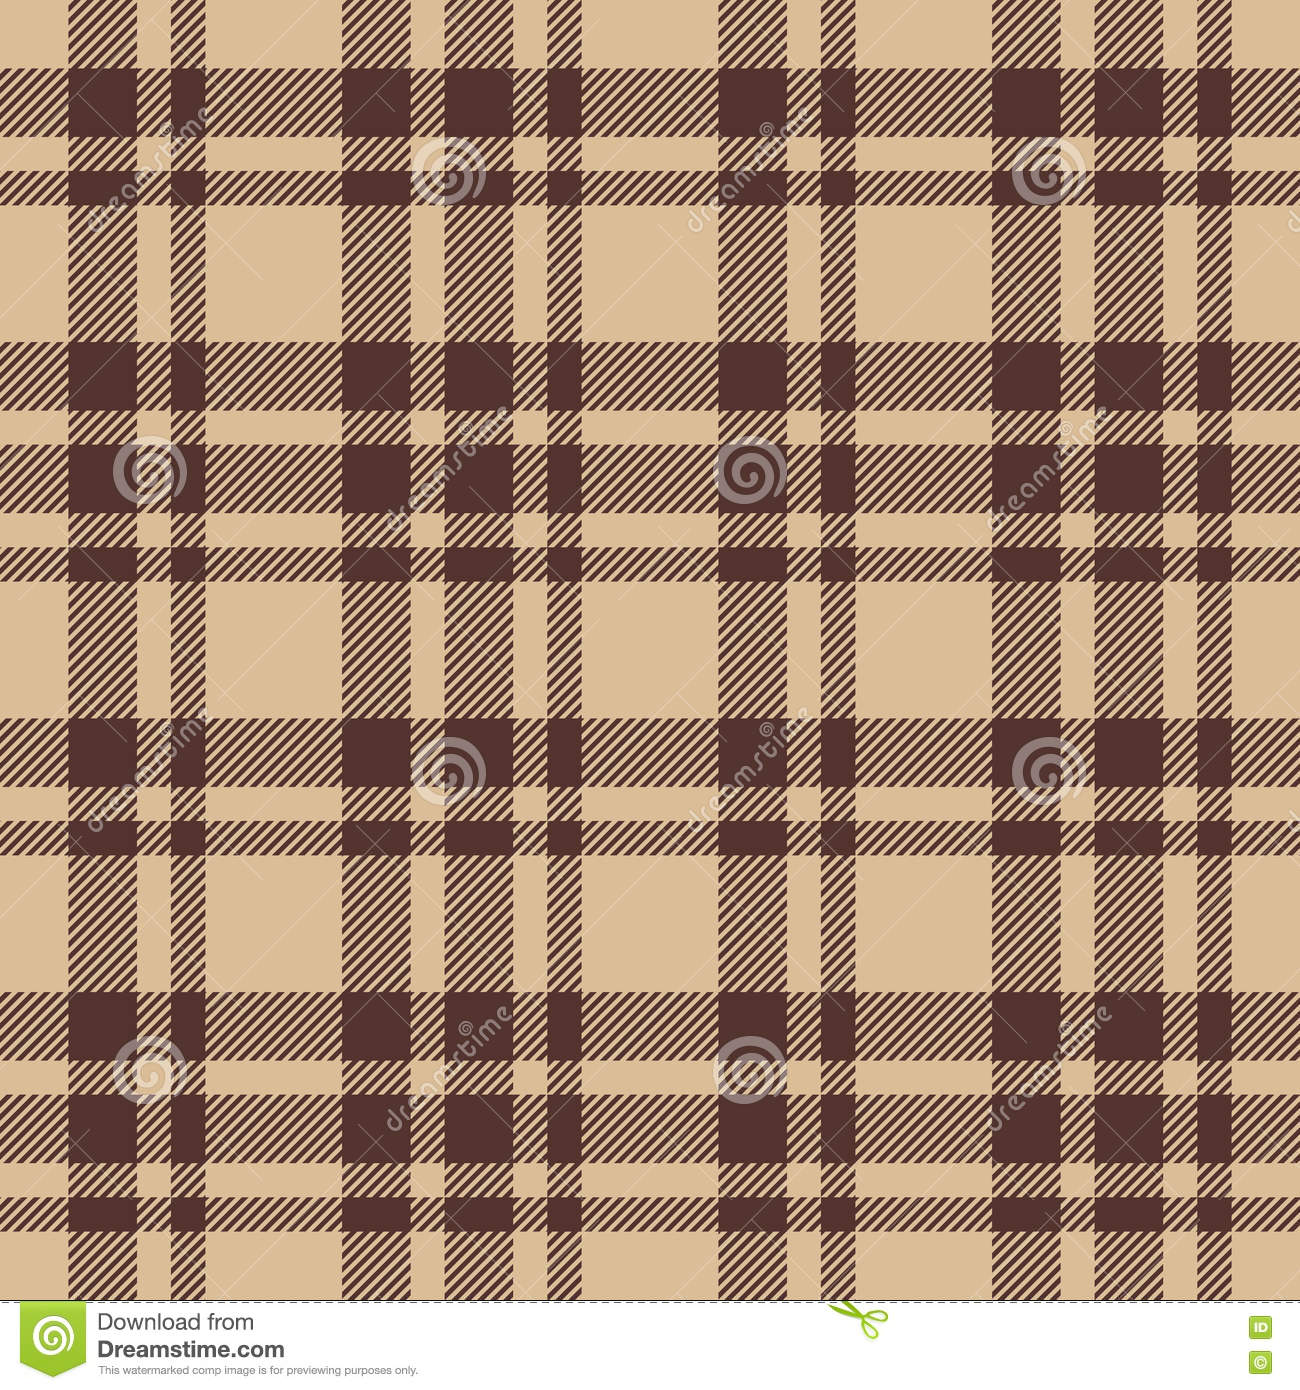 Brown Seamless Fabric Textures Beige Brown Check Plaid Seamless Fabric Texture Stock